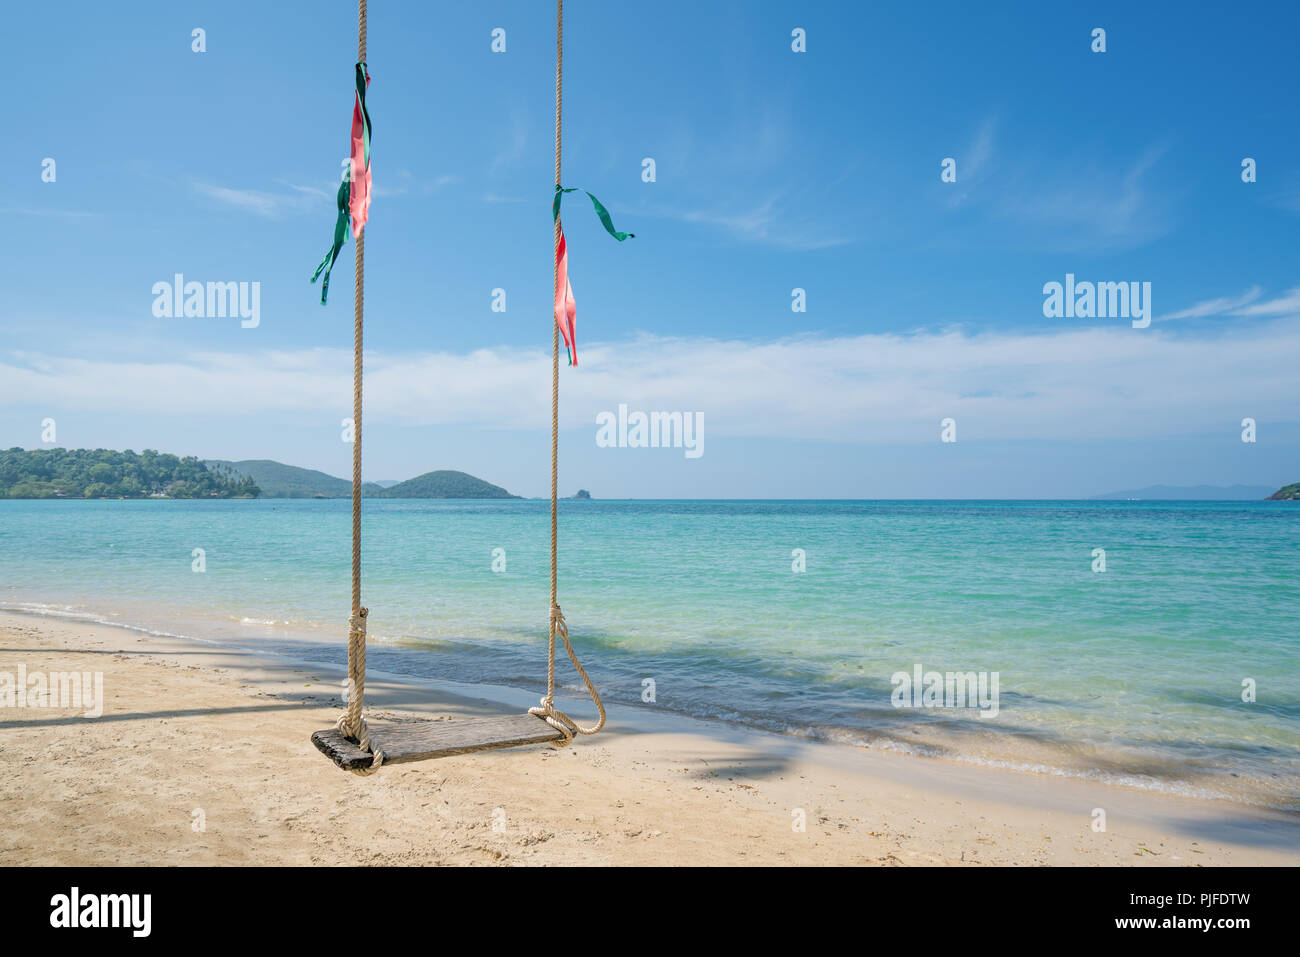 Swing hang from coconut palm tree over summer beach sea in Phuket ,Thailand. Summer, Travel, Vacation and Holiday concept - Stock Image